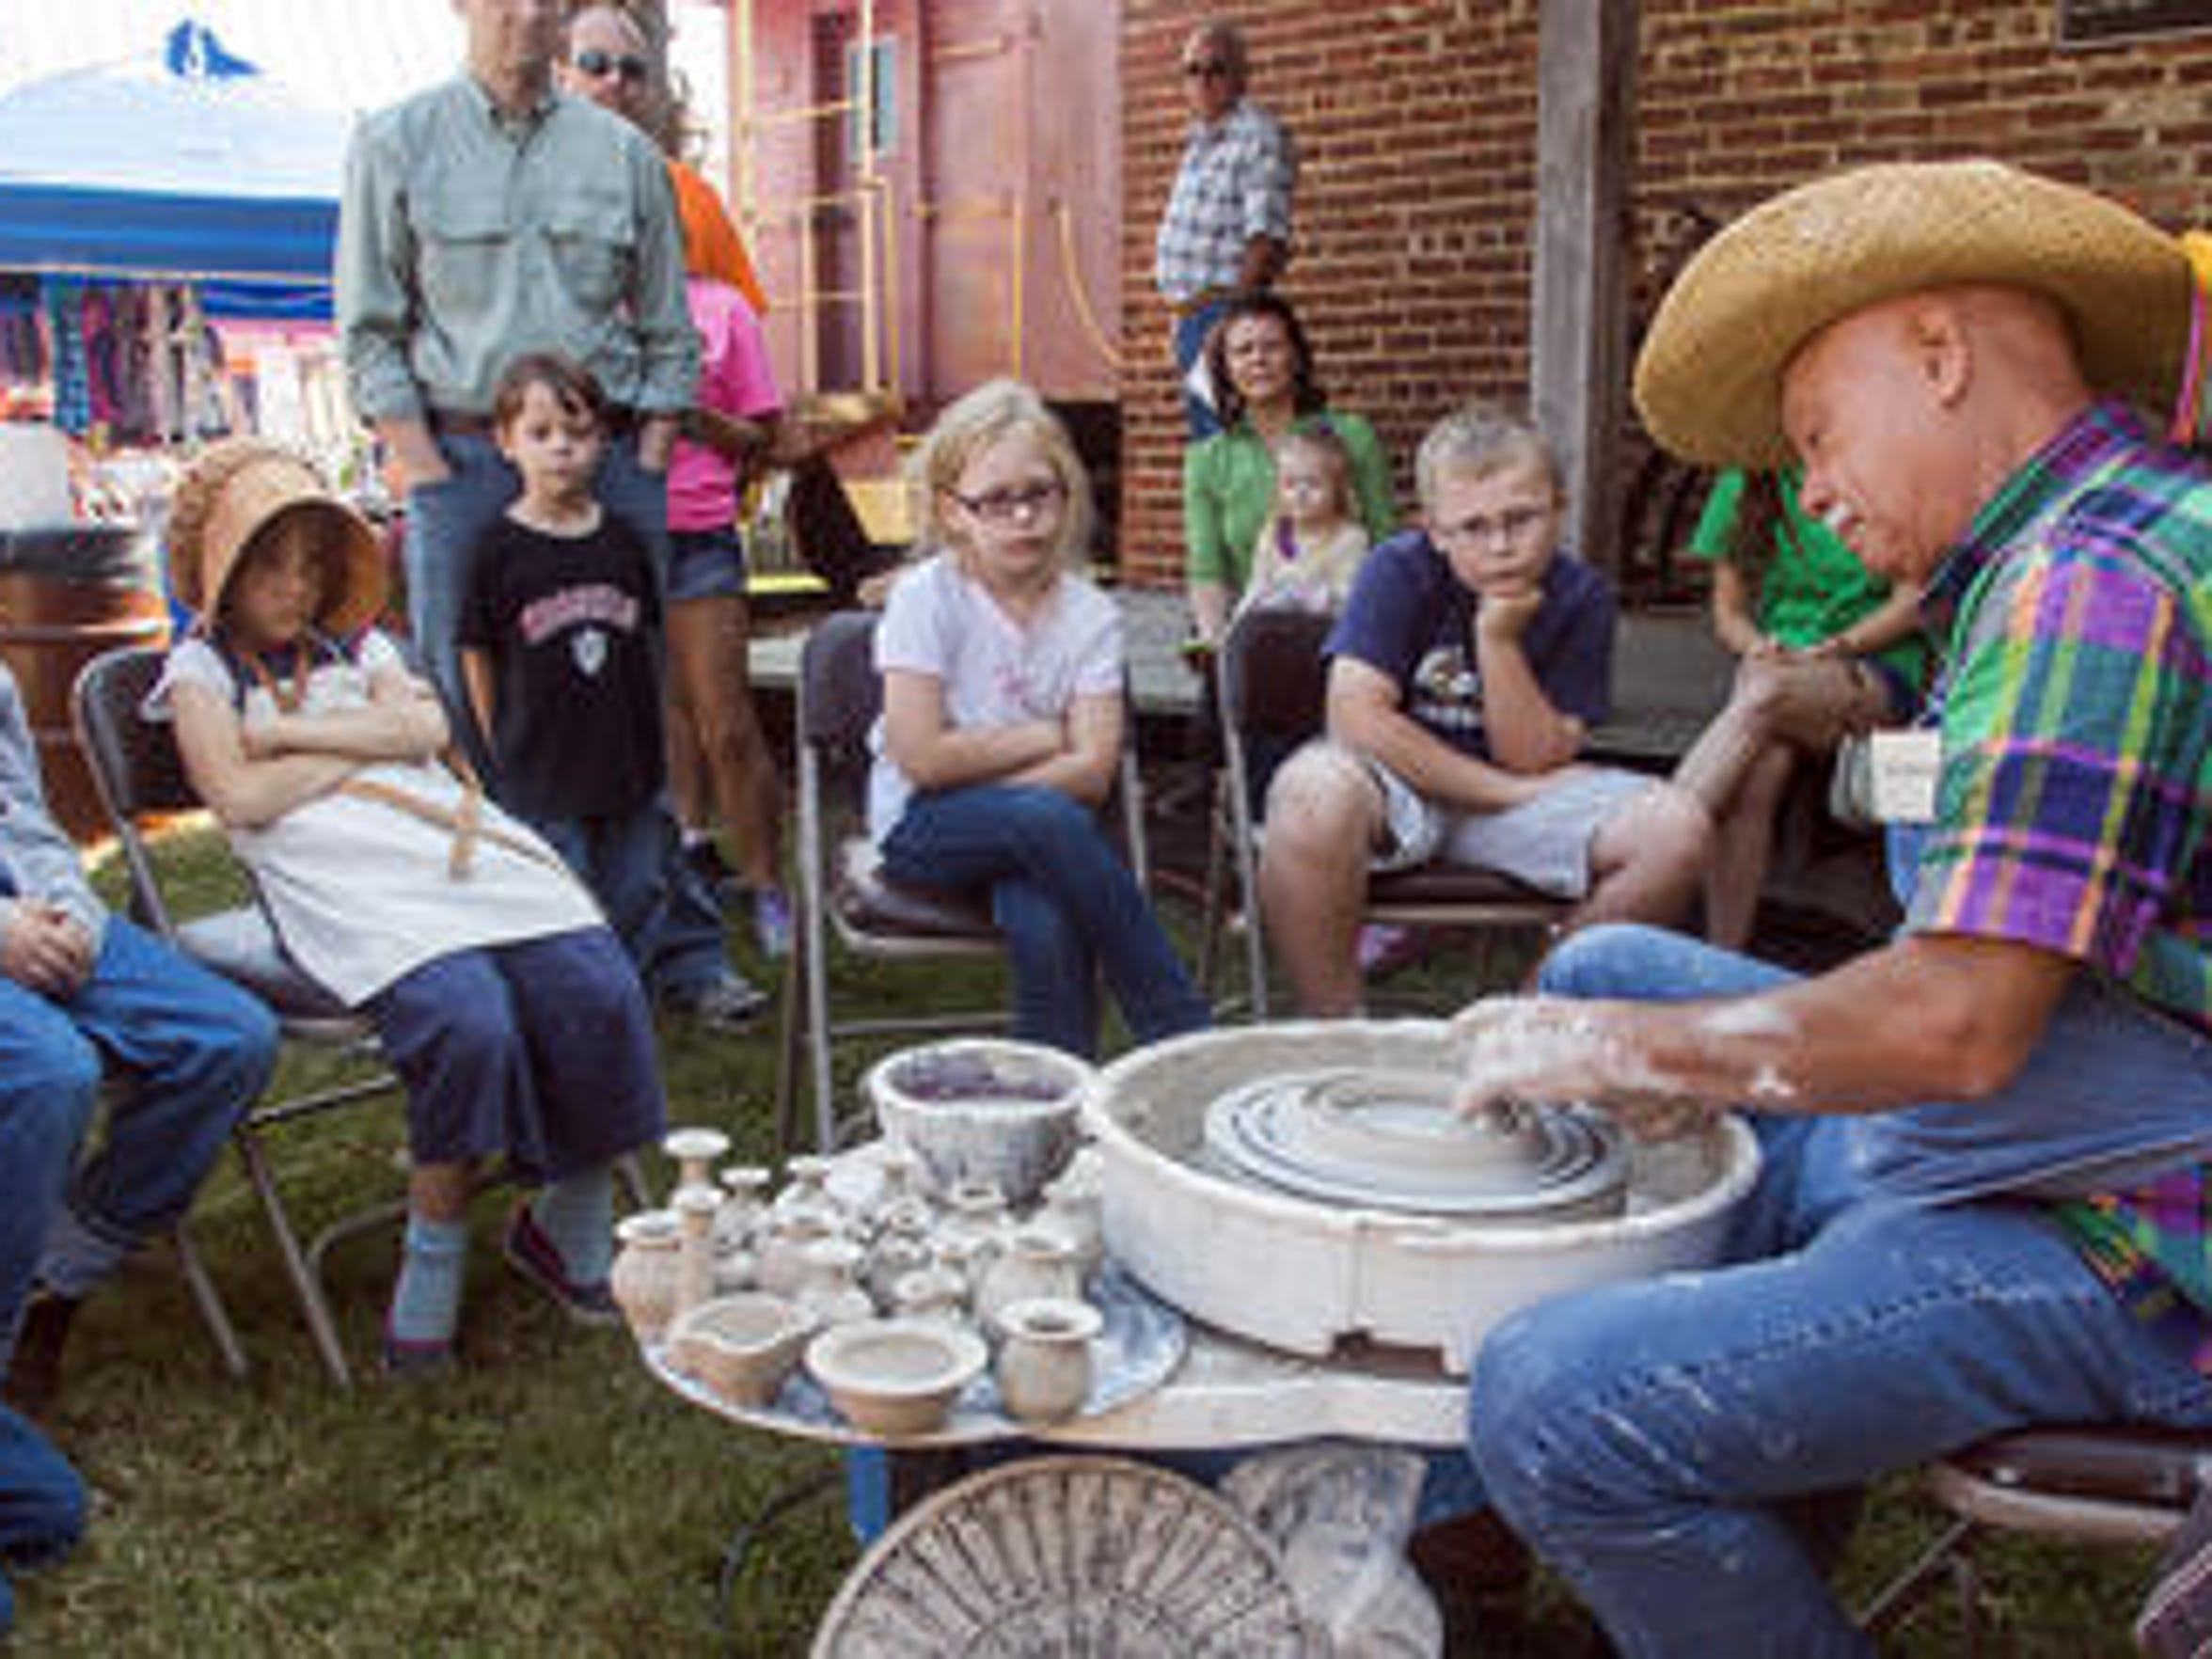 SATURDAY -- Roy Overcast demonstrates the art of pottery as a crowd watches at Harvest Days Saturday at Cannonsburgh Pioneer Village in Murfreesboro in 2014.